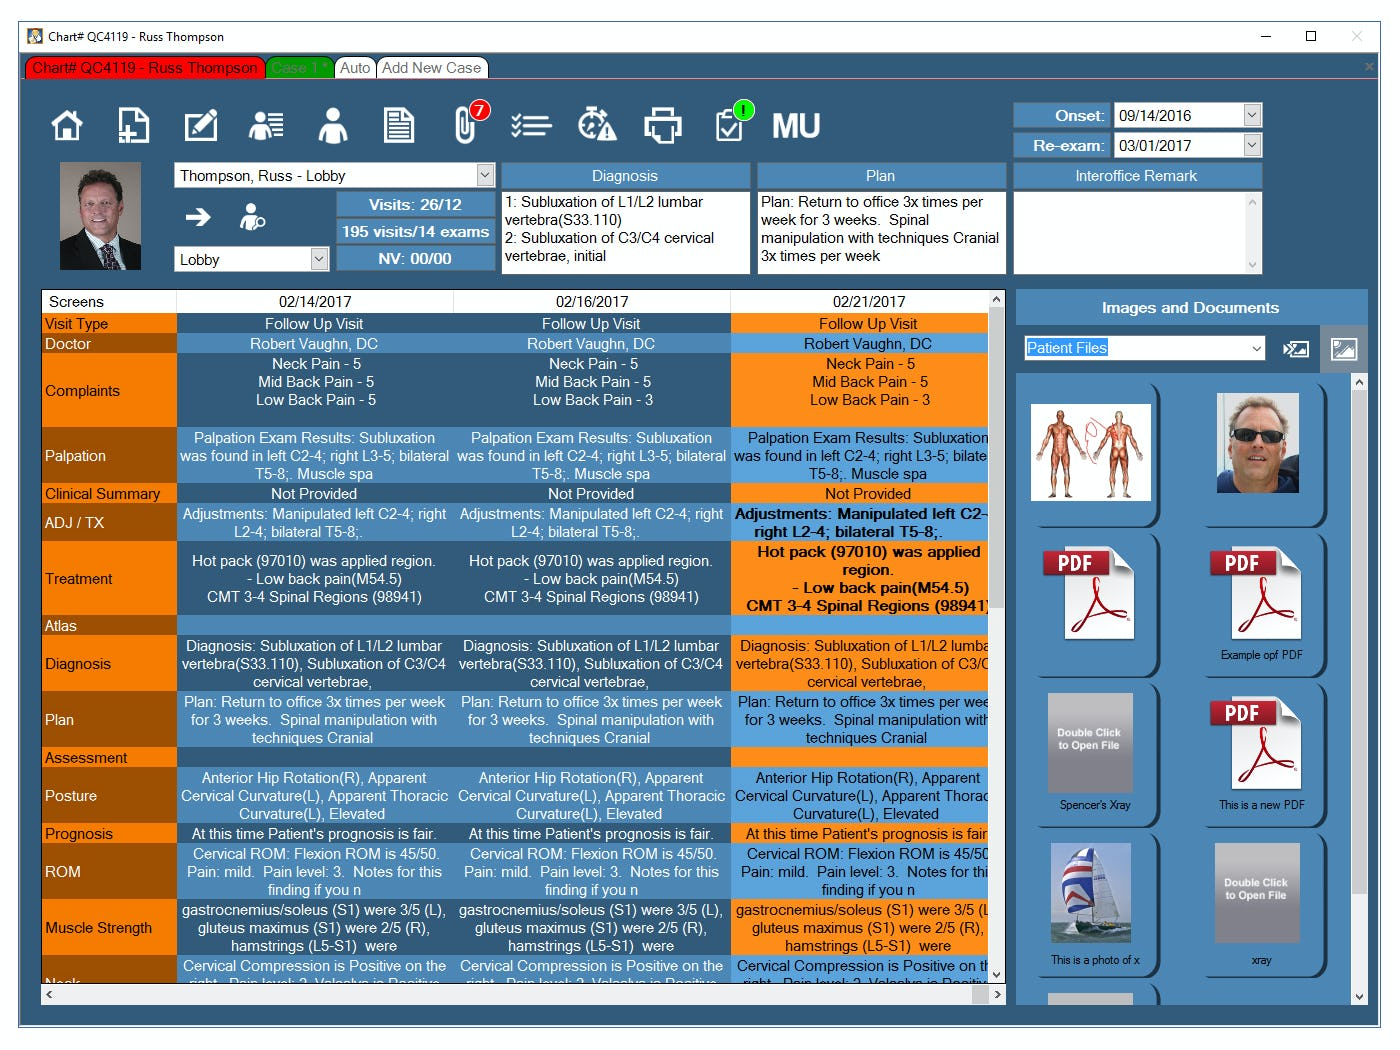 Chiro QuickCharts Software - Travel card view